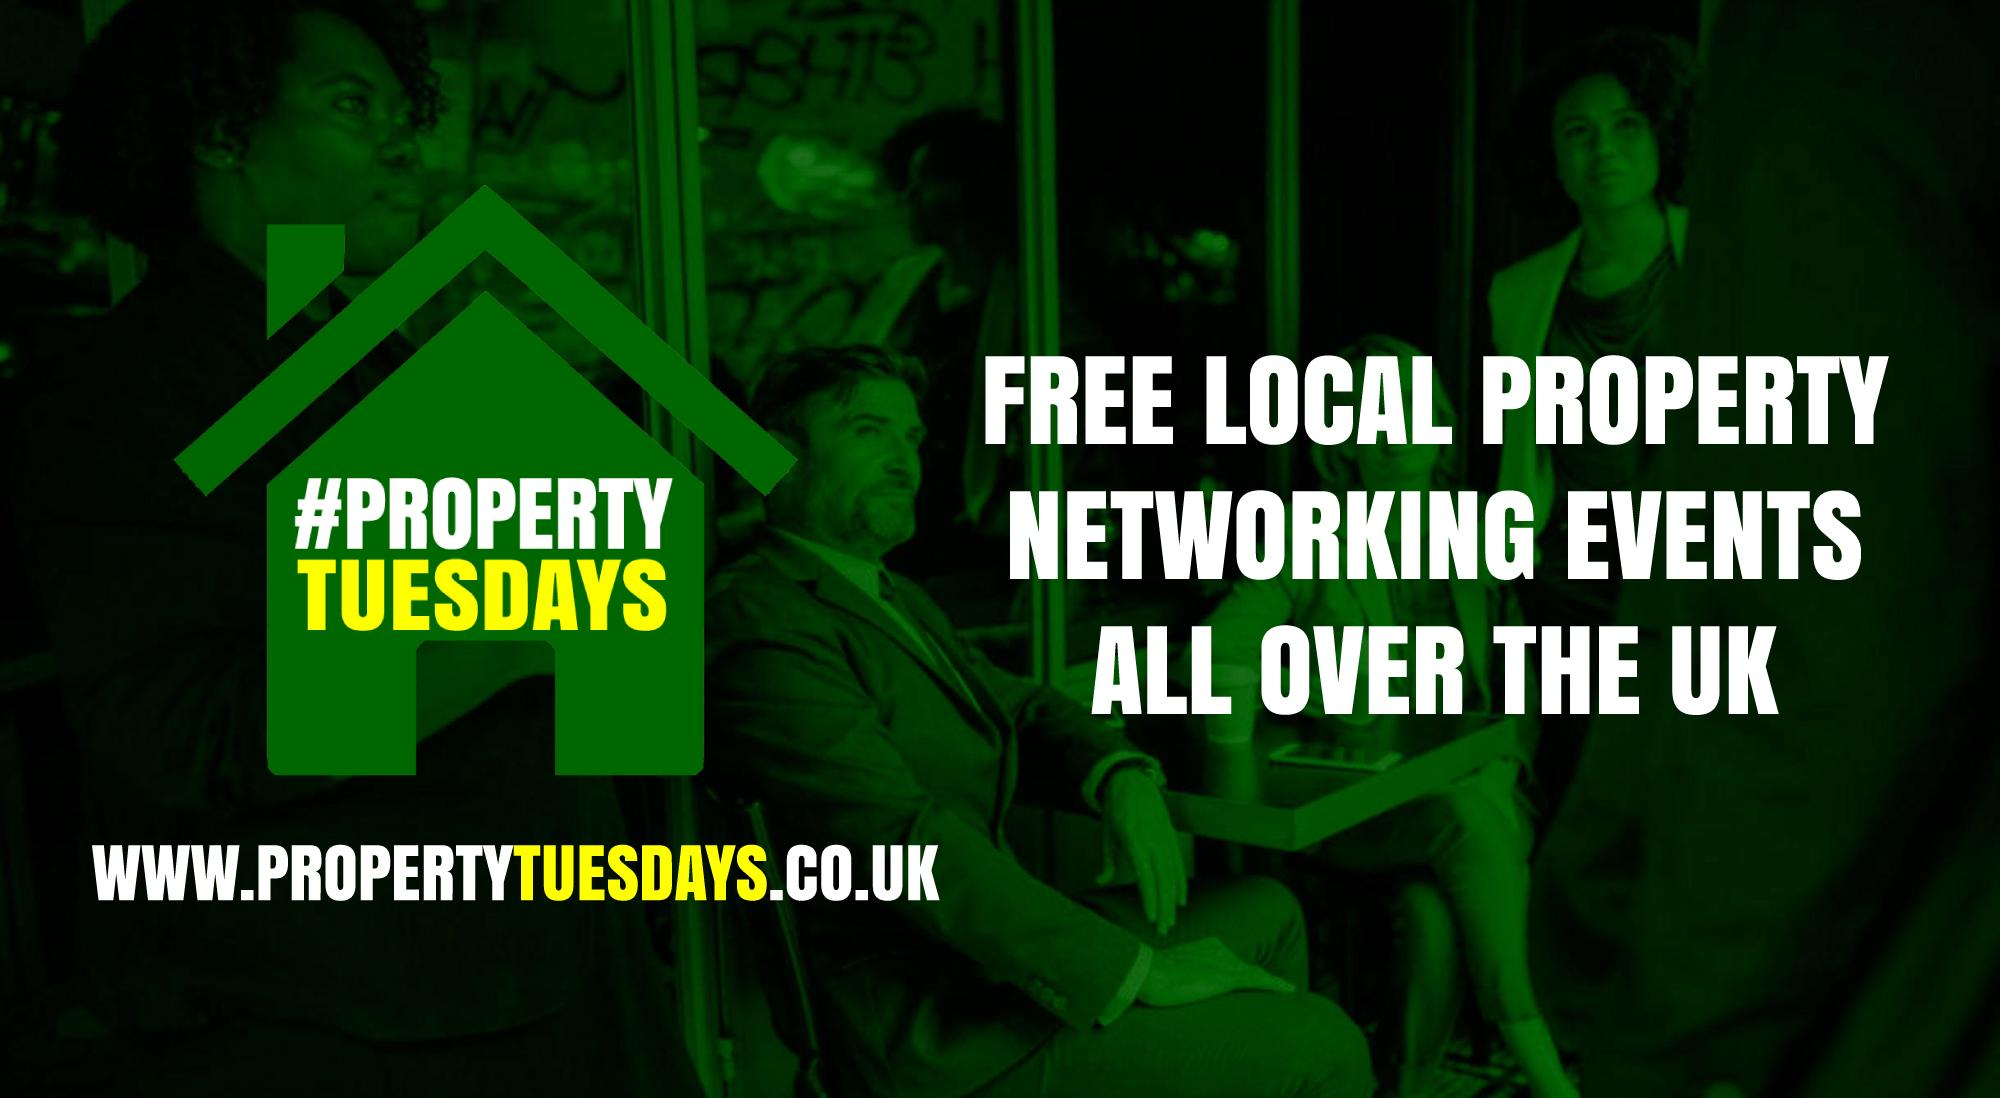 Property Tuesdays! Free property networking event in Nottingham